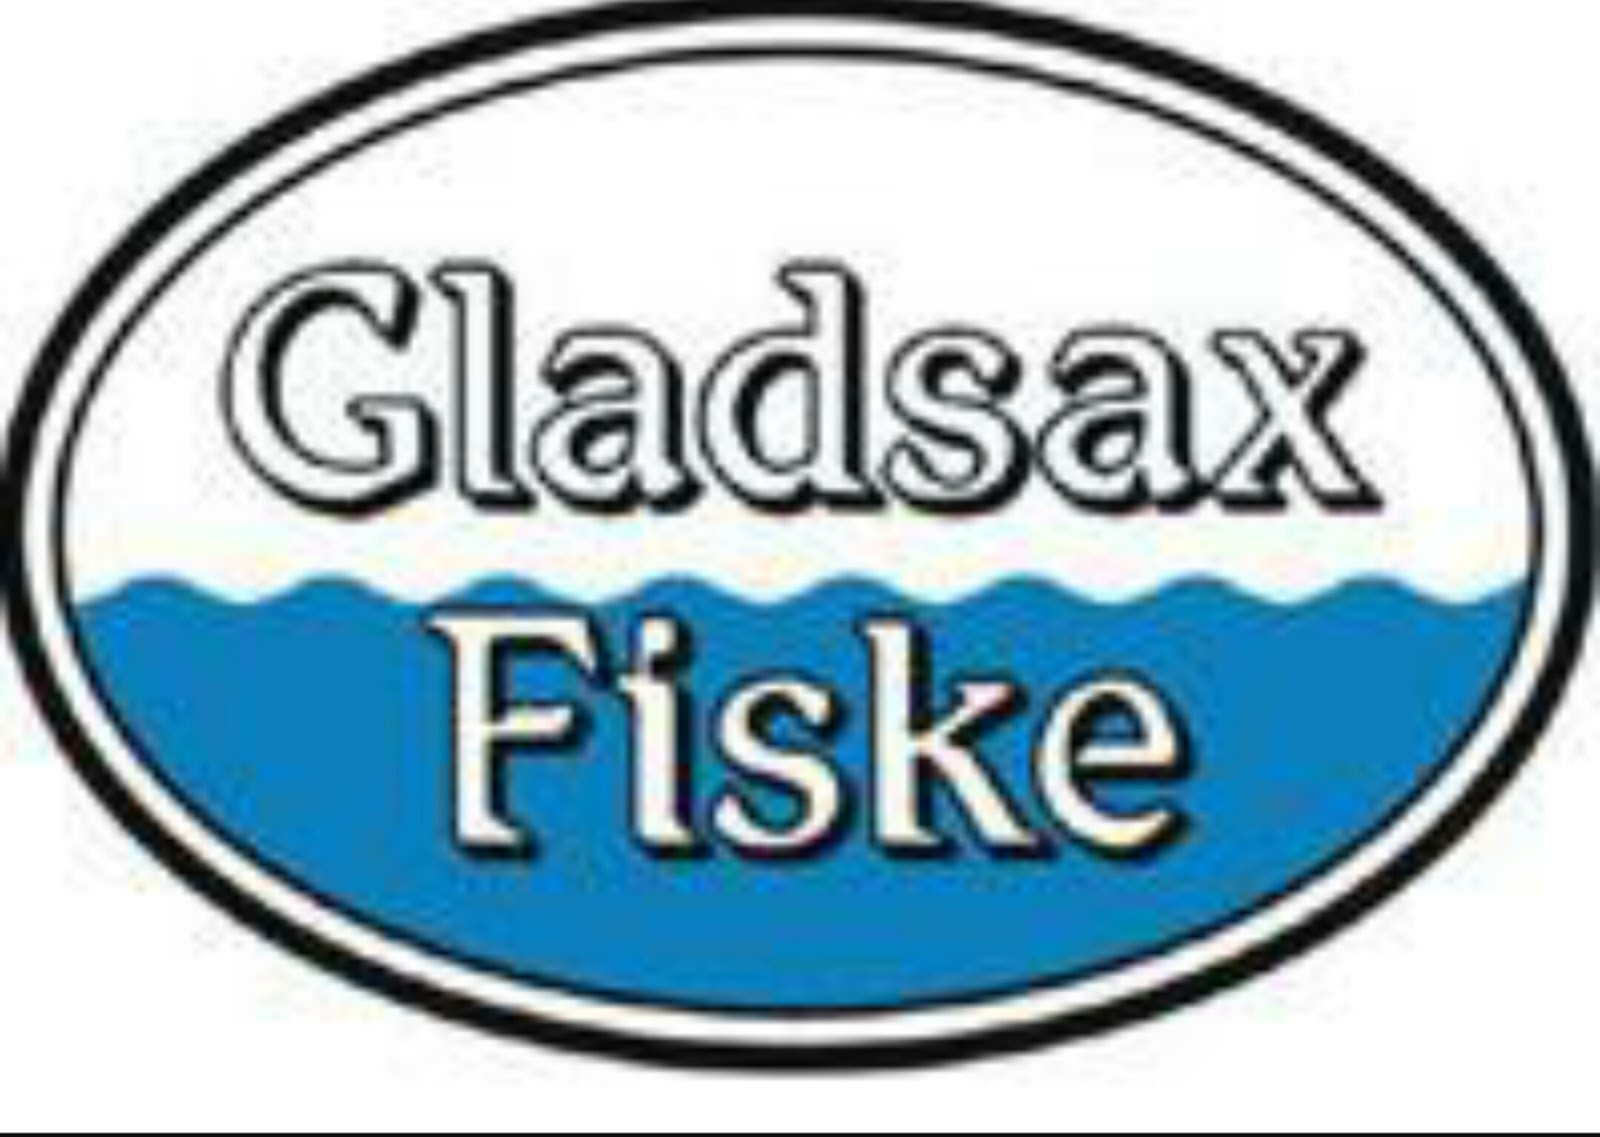 Gladsax